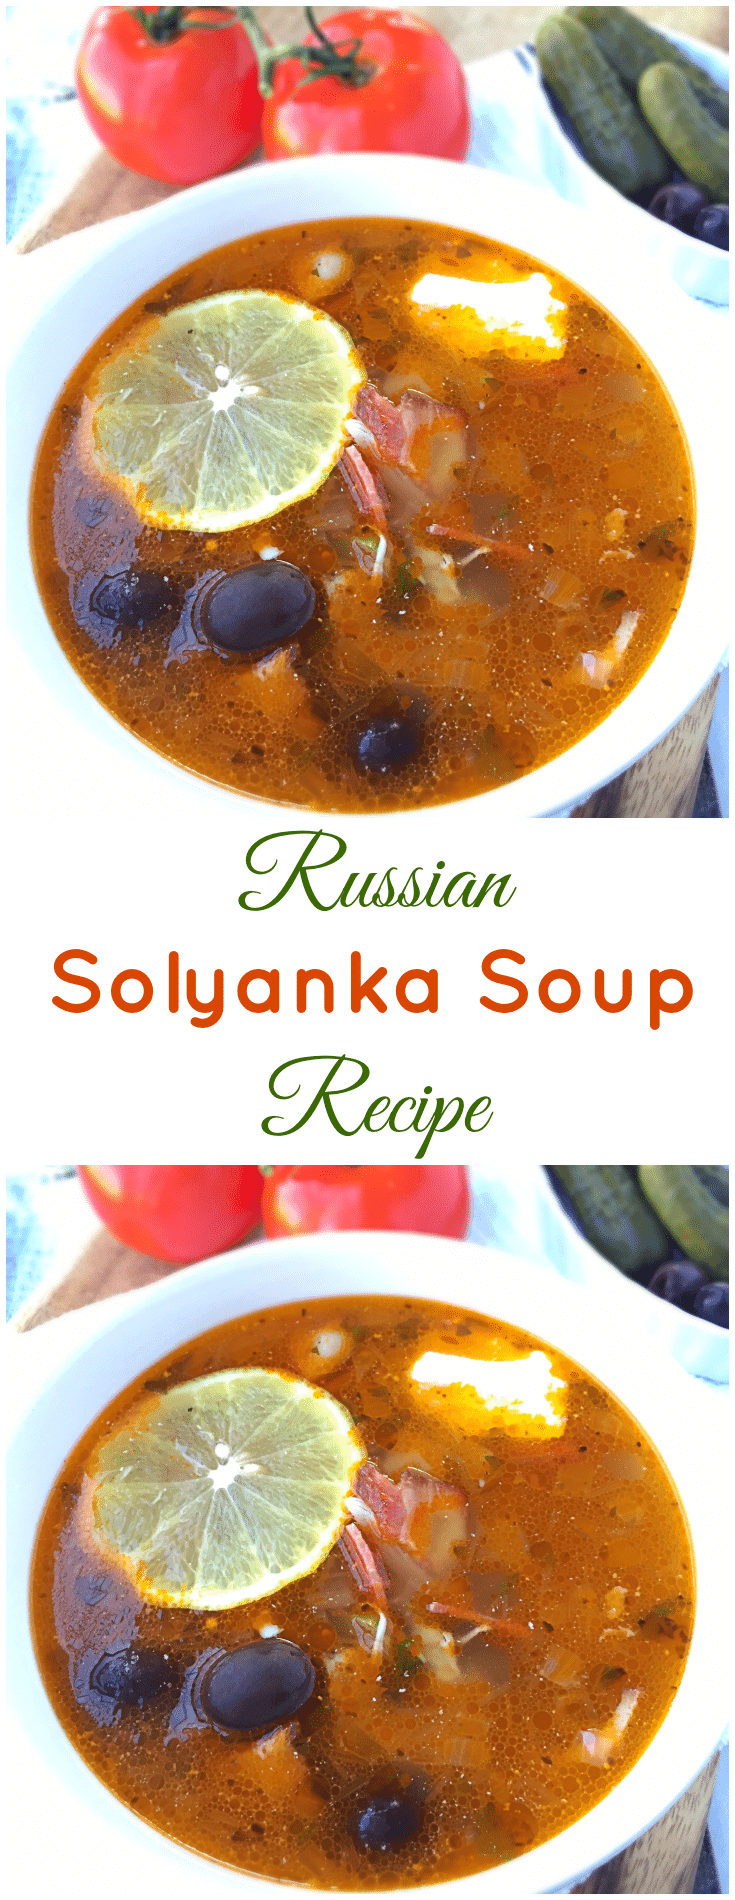 Solyanka Recipe in a white bowl, topped with black olives and a slice of lemon. Collage image.